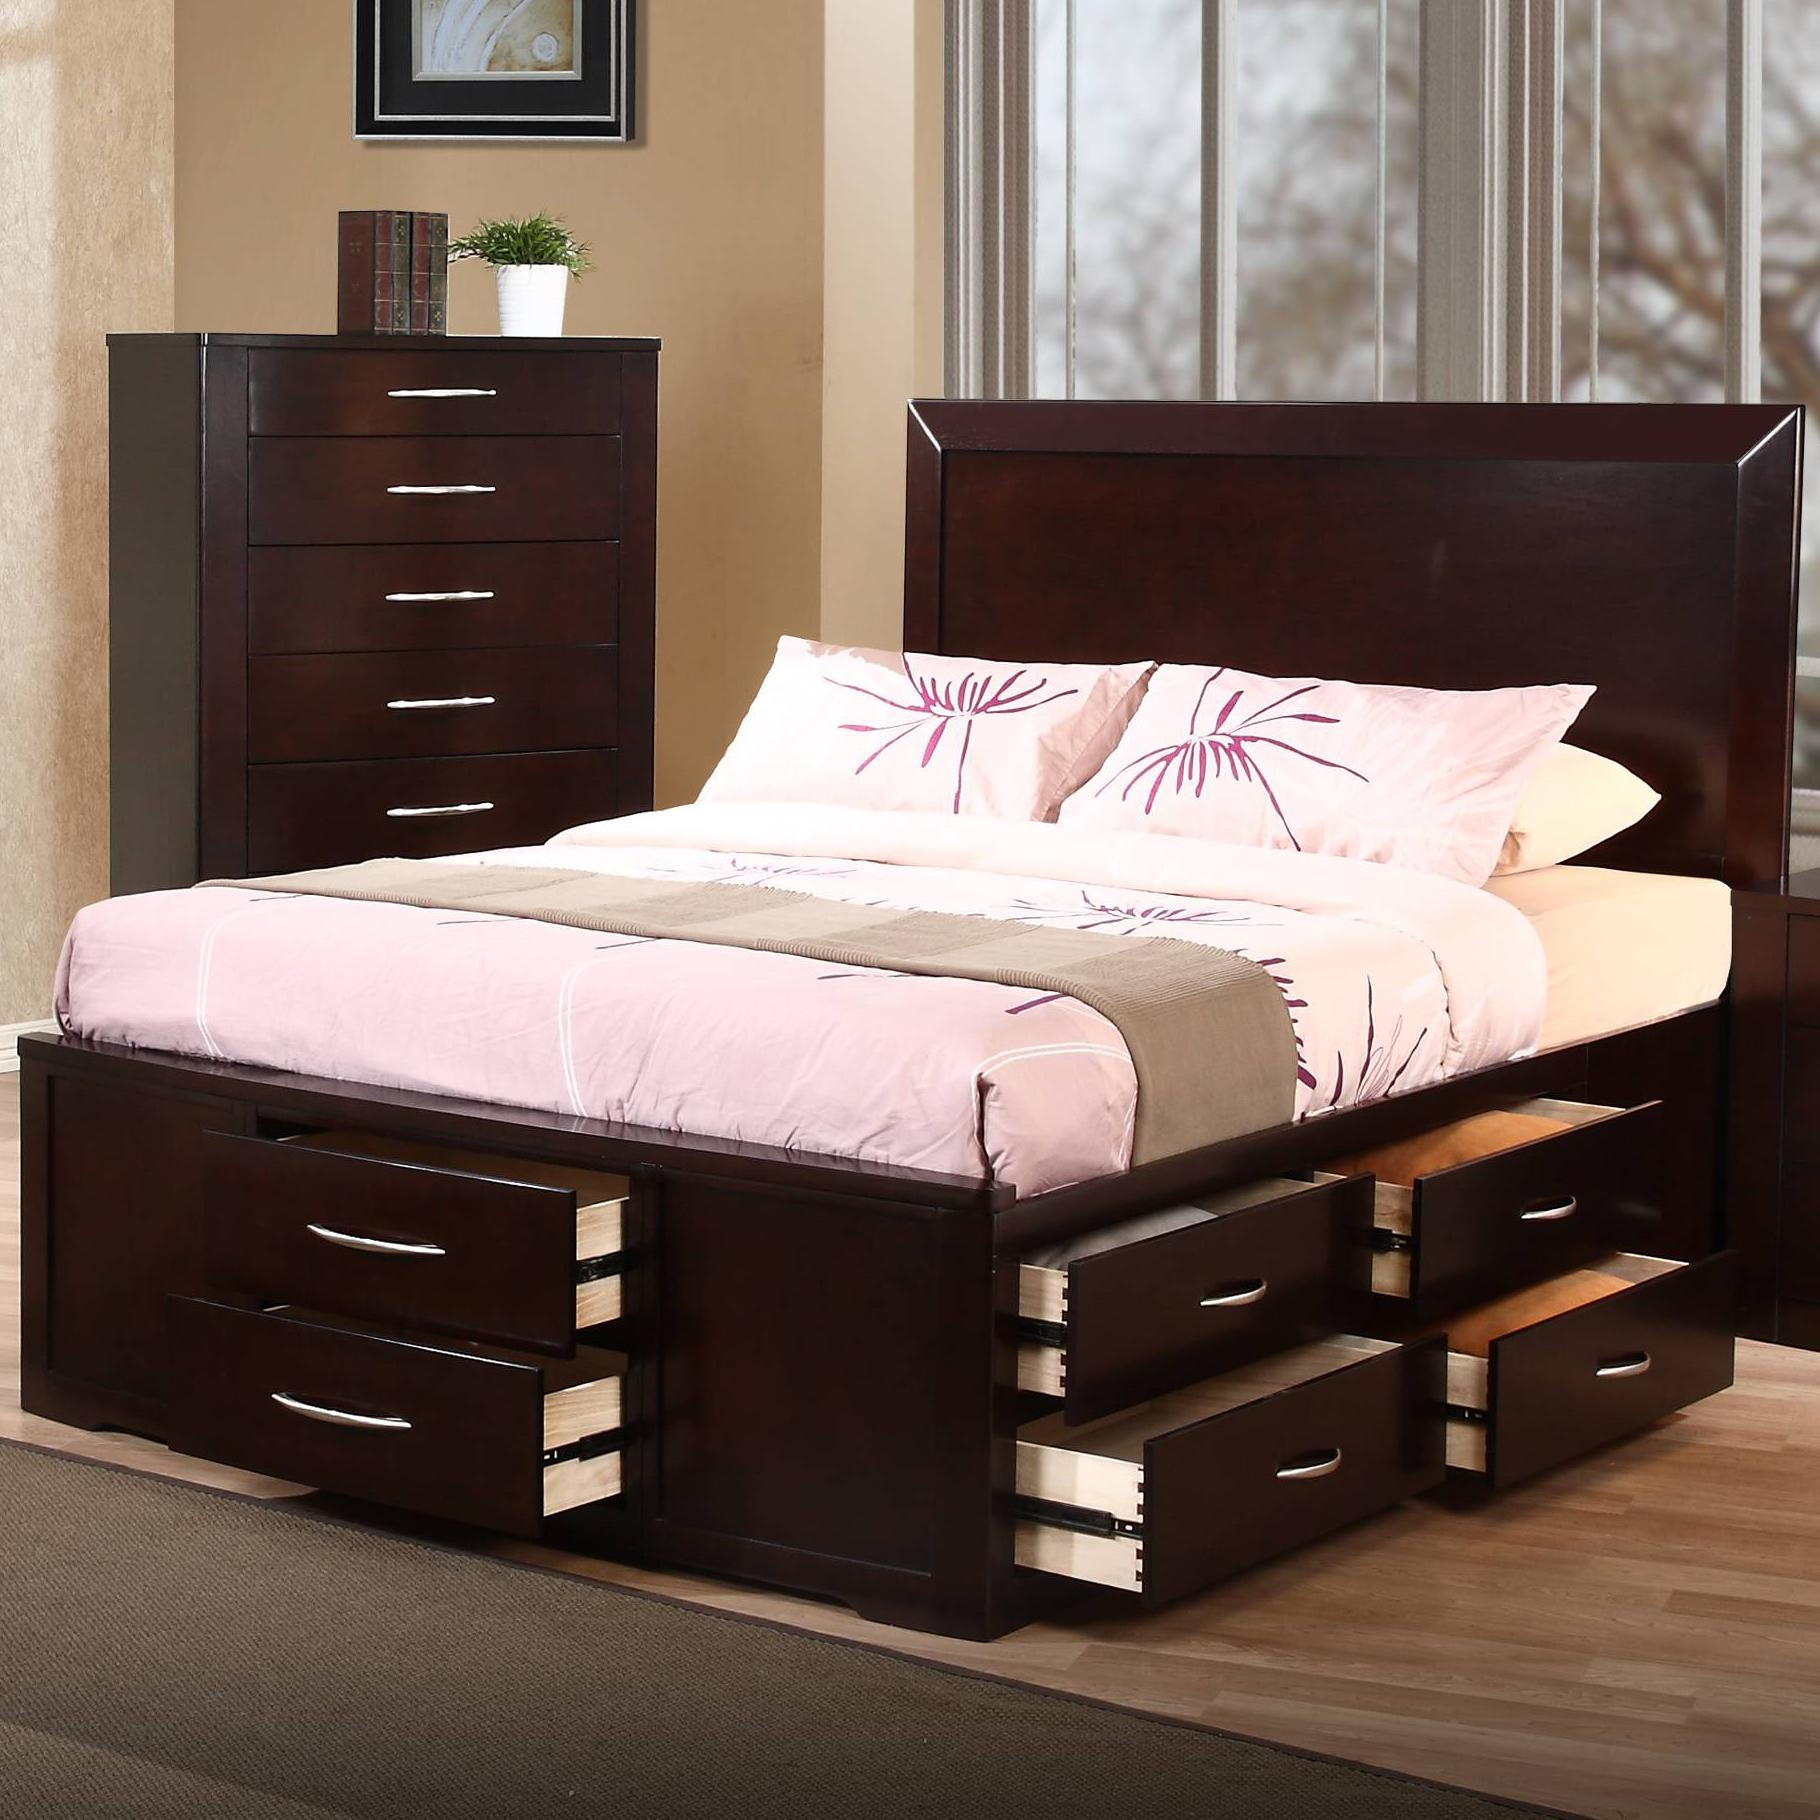 King Size Bed Frames With Drawers Underneath